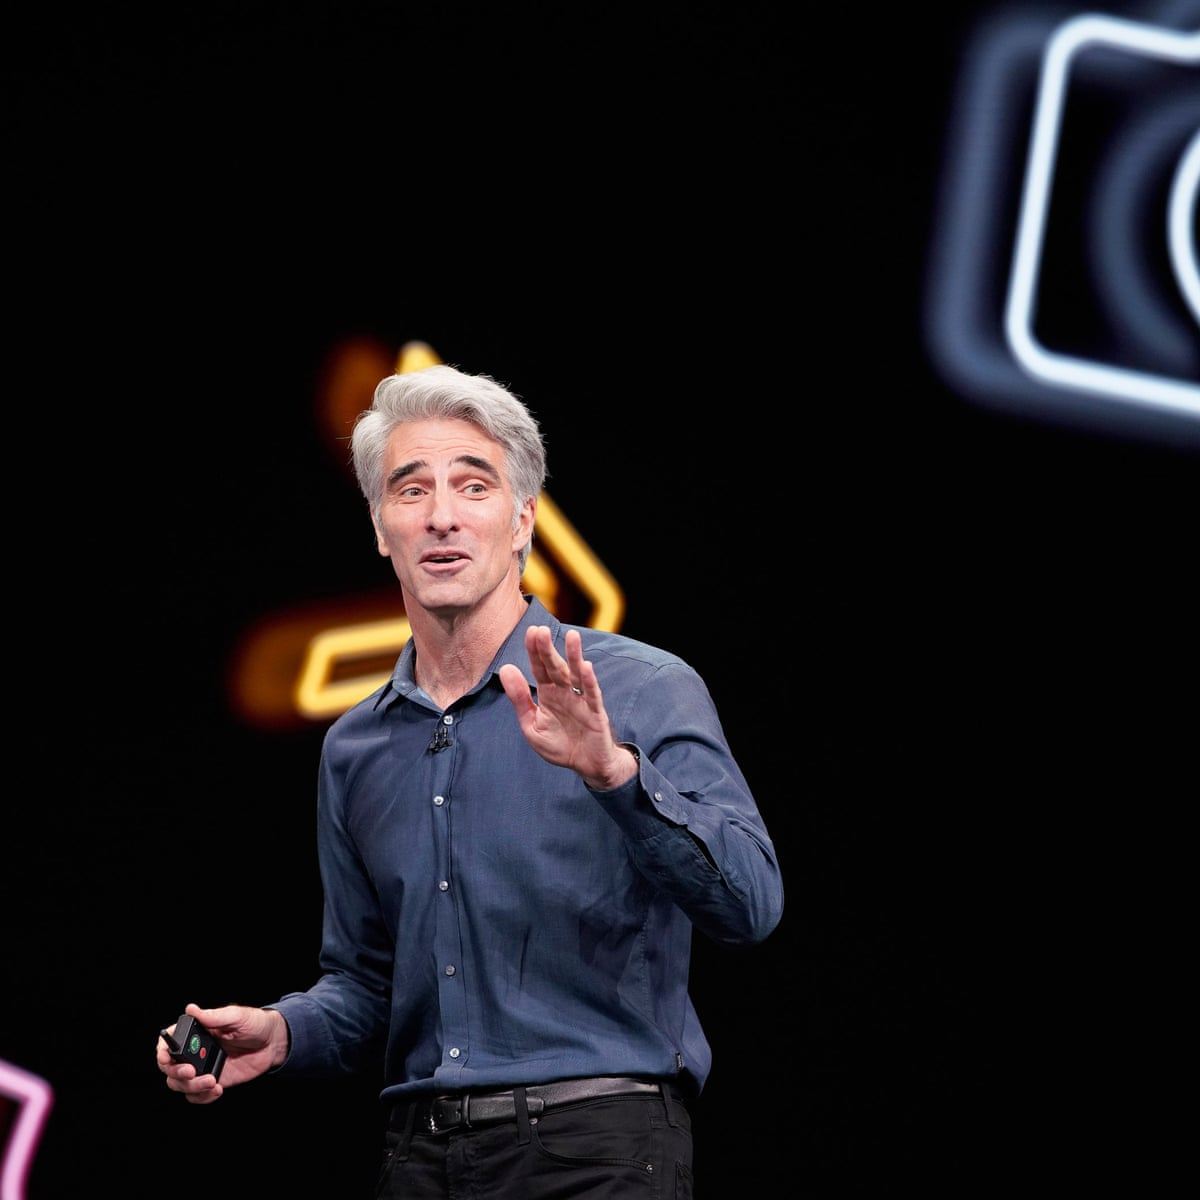 Ios 13 Apple Launches Faster Iphone Software With More Privacy Apple The Guardian